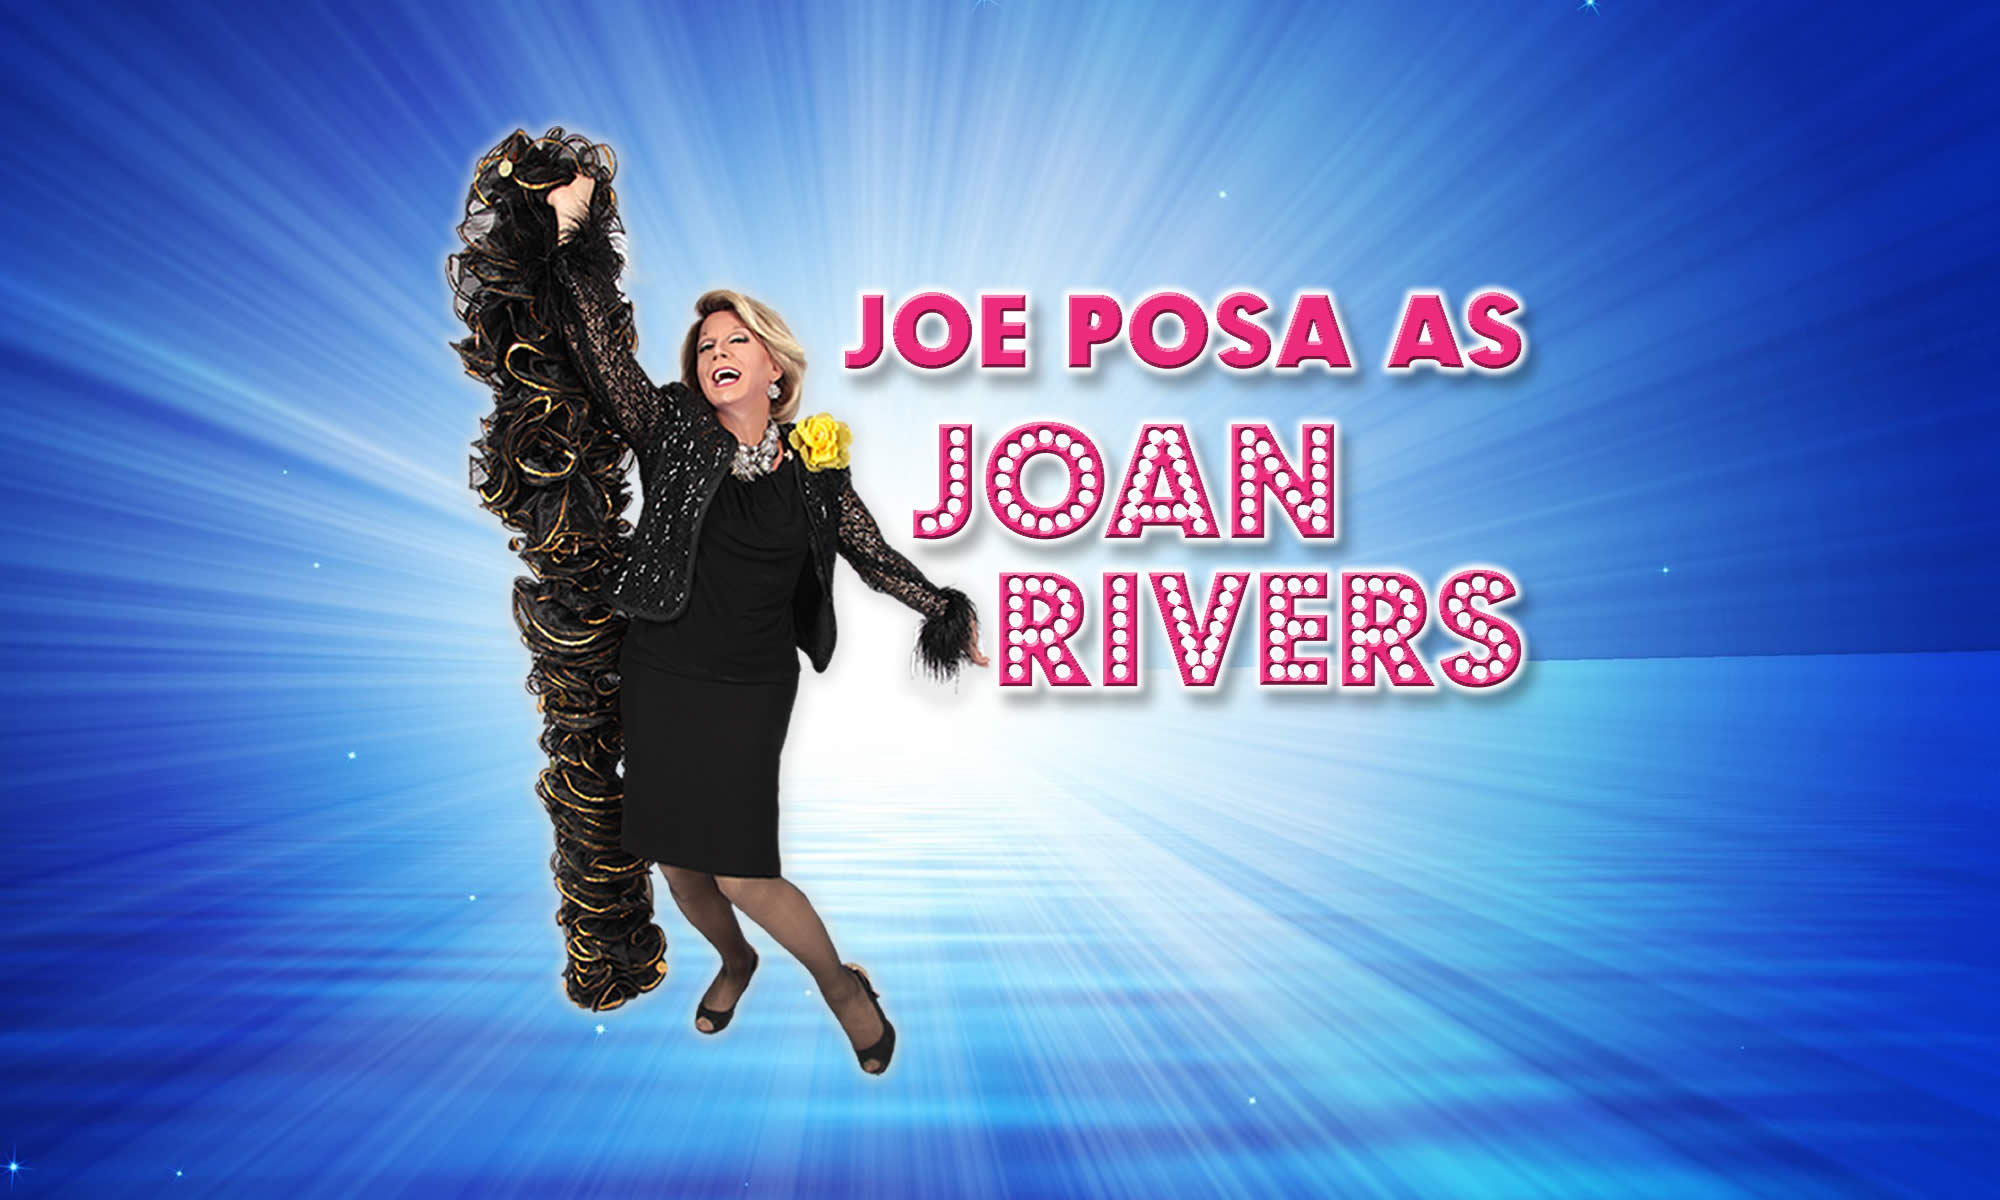 Joe Posa as Joan Rivers